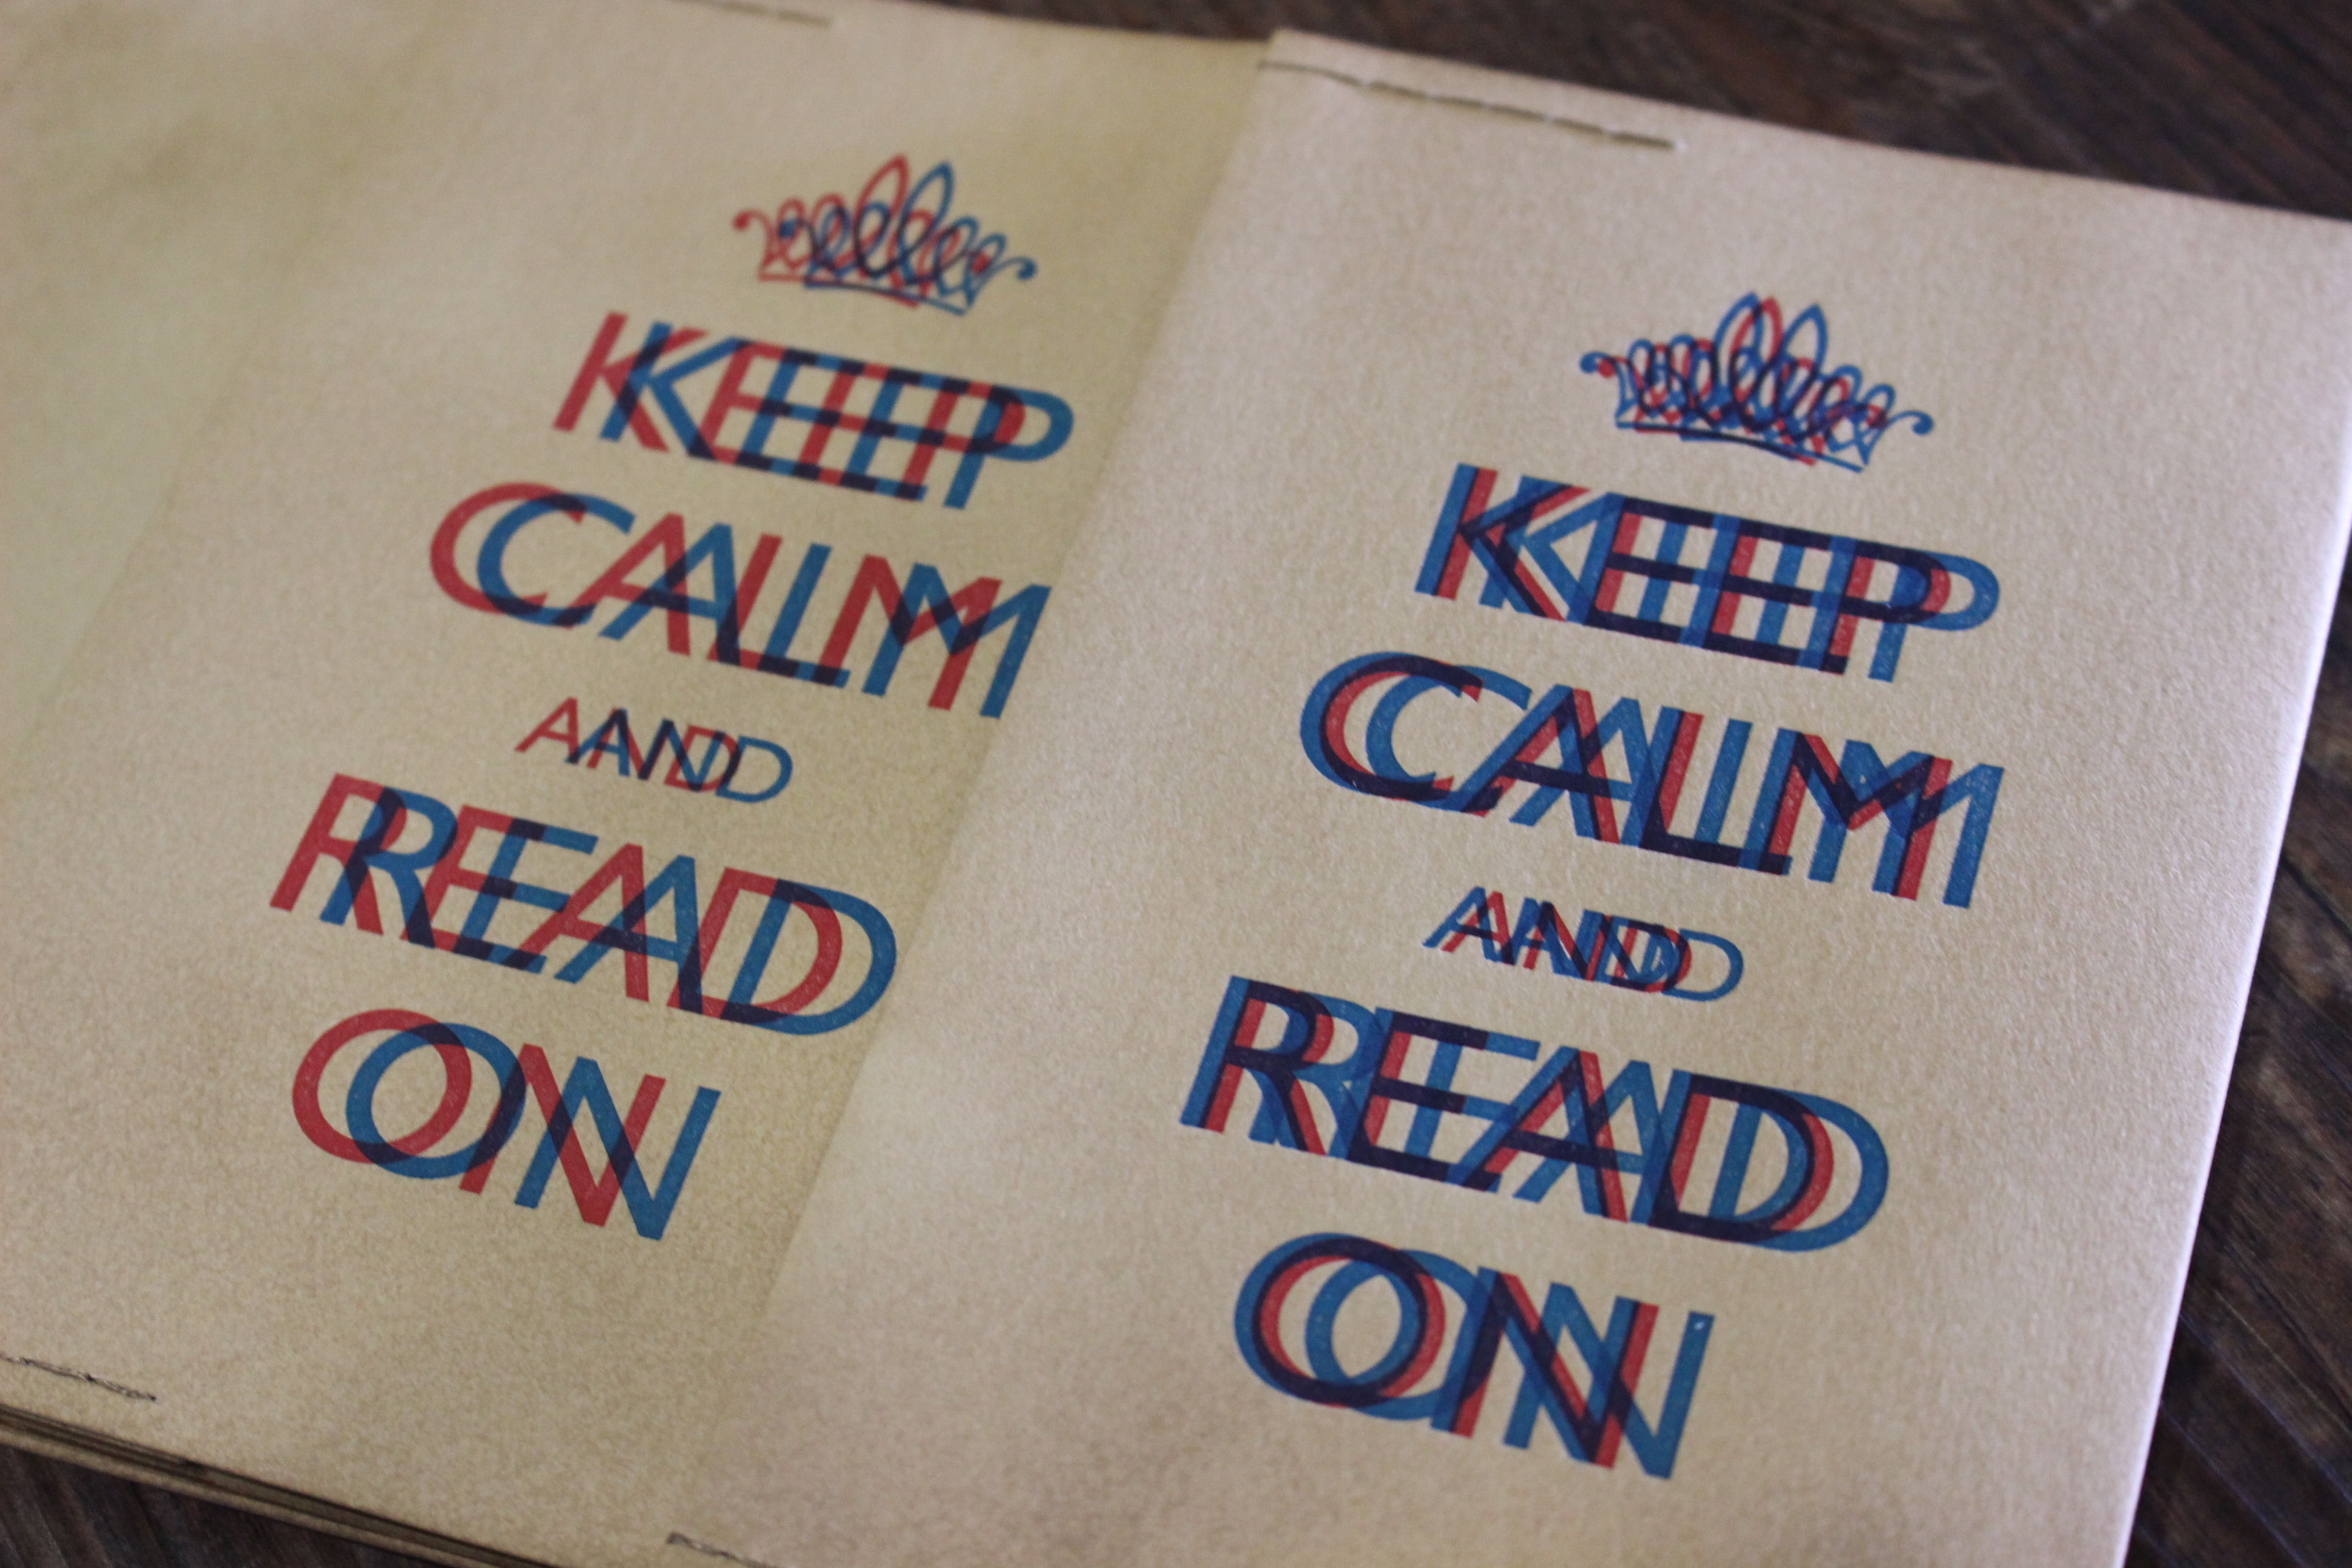 KEEP CALM AND READ ON  ブックカバー (版ズレ) 2個セット